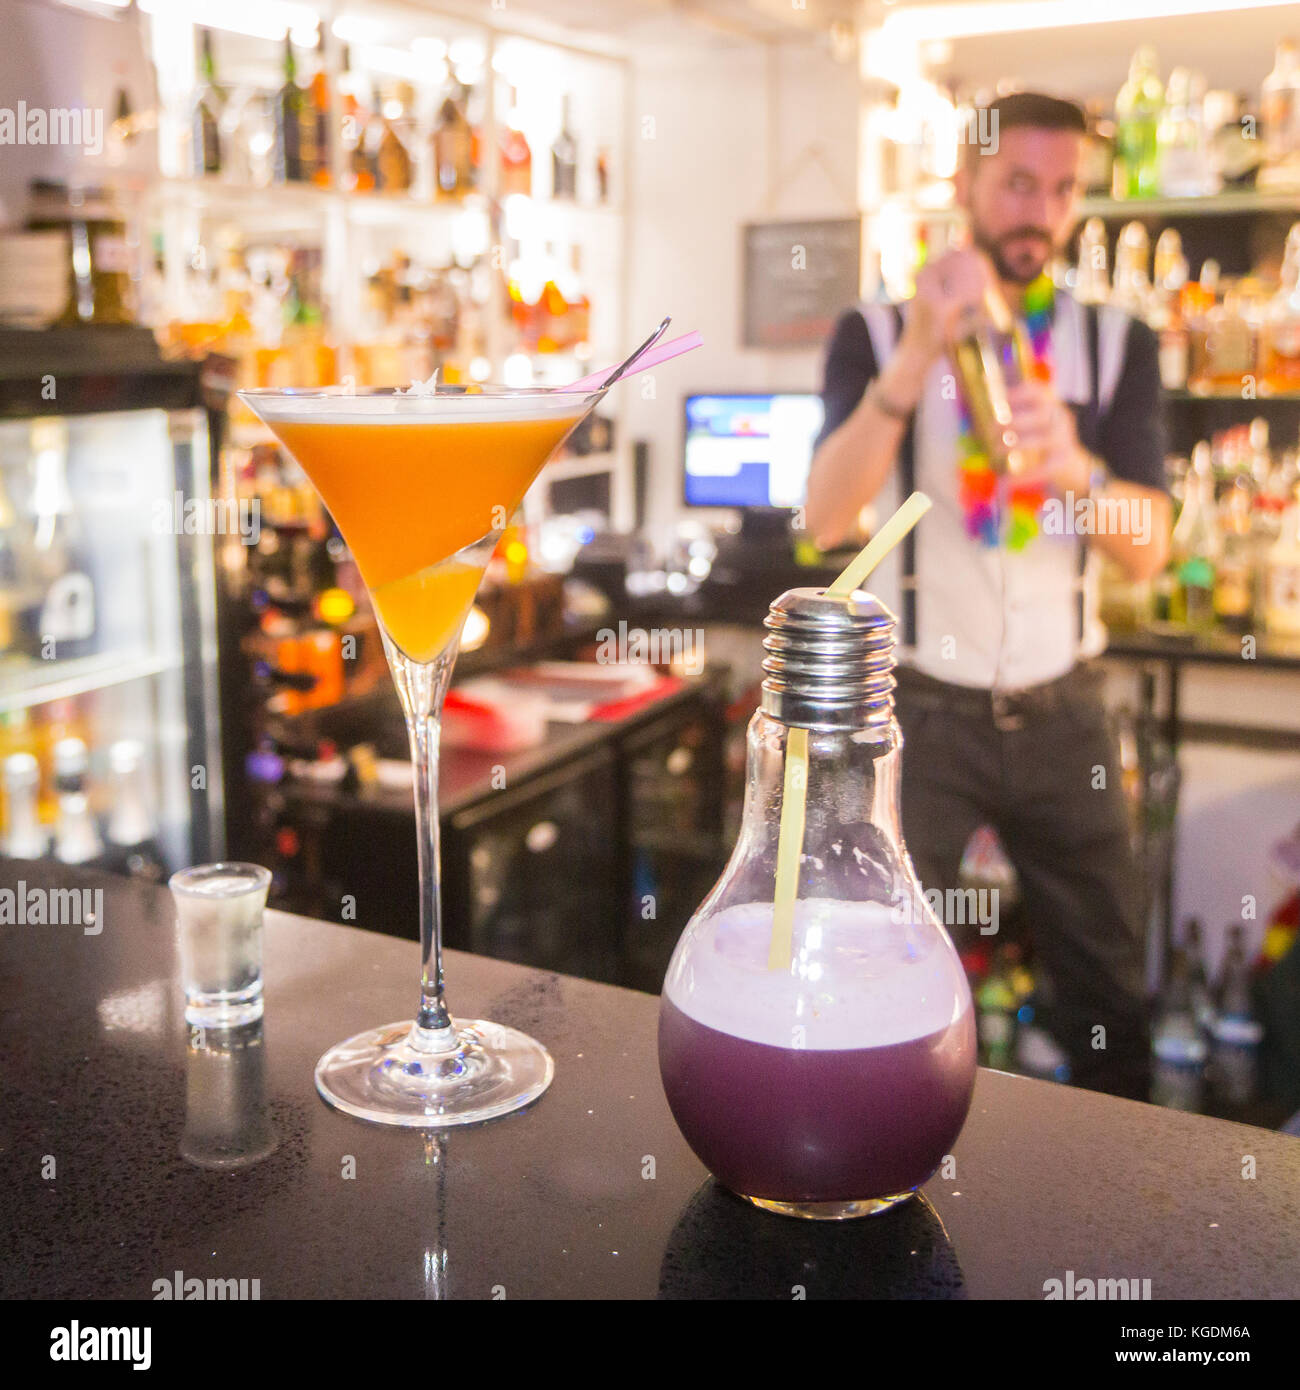 close up of cocktail with barman in the background - Stock Image